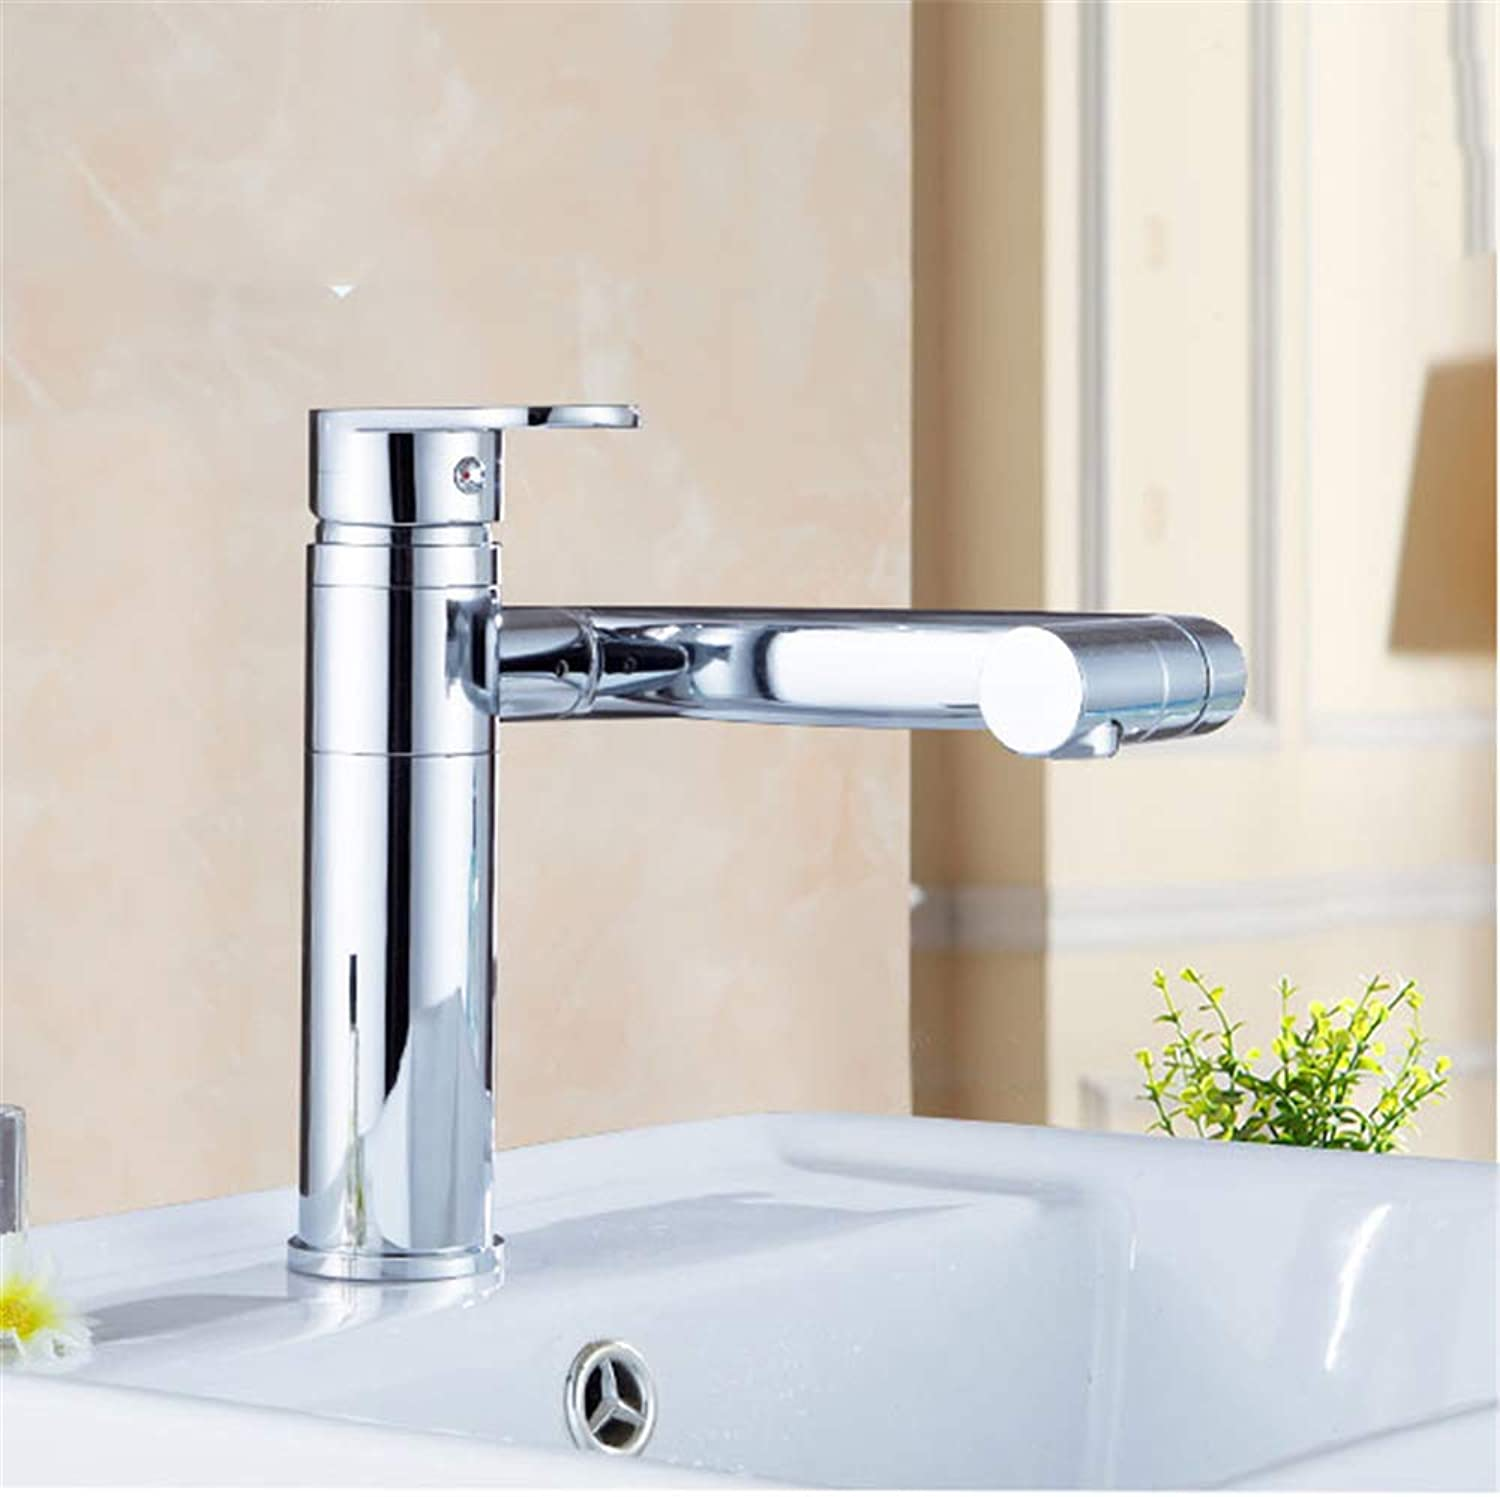 YBHNB Bathroom Basin Taps, Multi-function 360 Degree redating Wash Basin Faucet Hot and Cold Mixing Wash Basin Sink Faucet Polishing Single handle Faucet(Low)